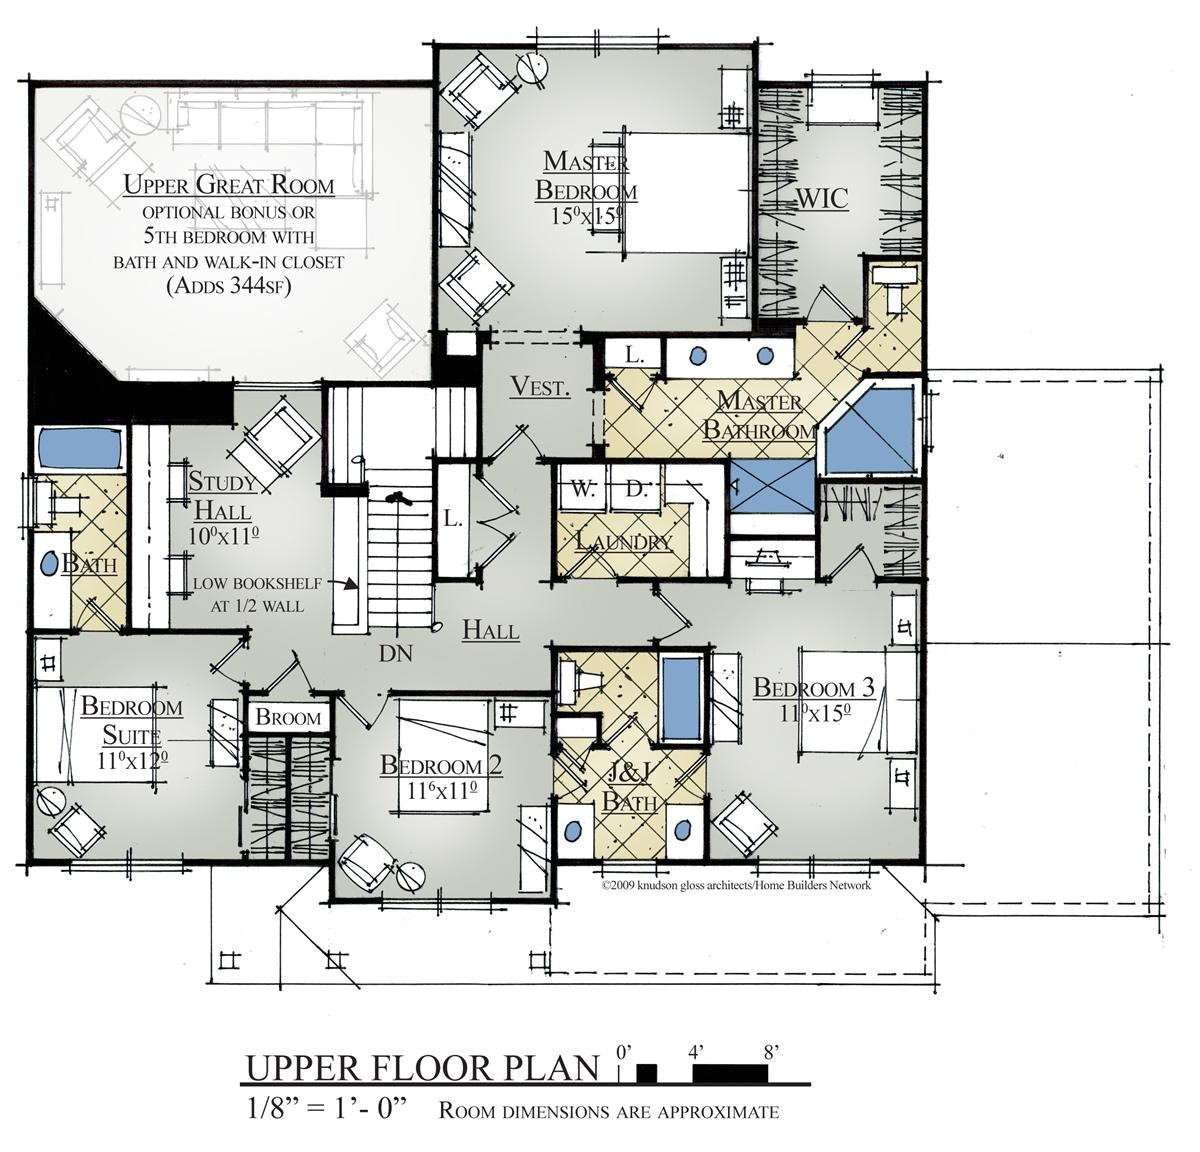 house plans gj gardner